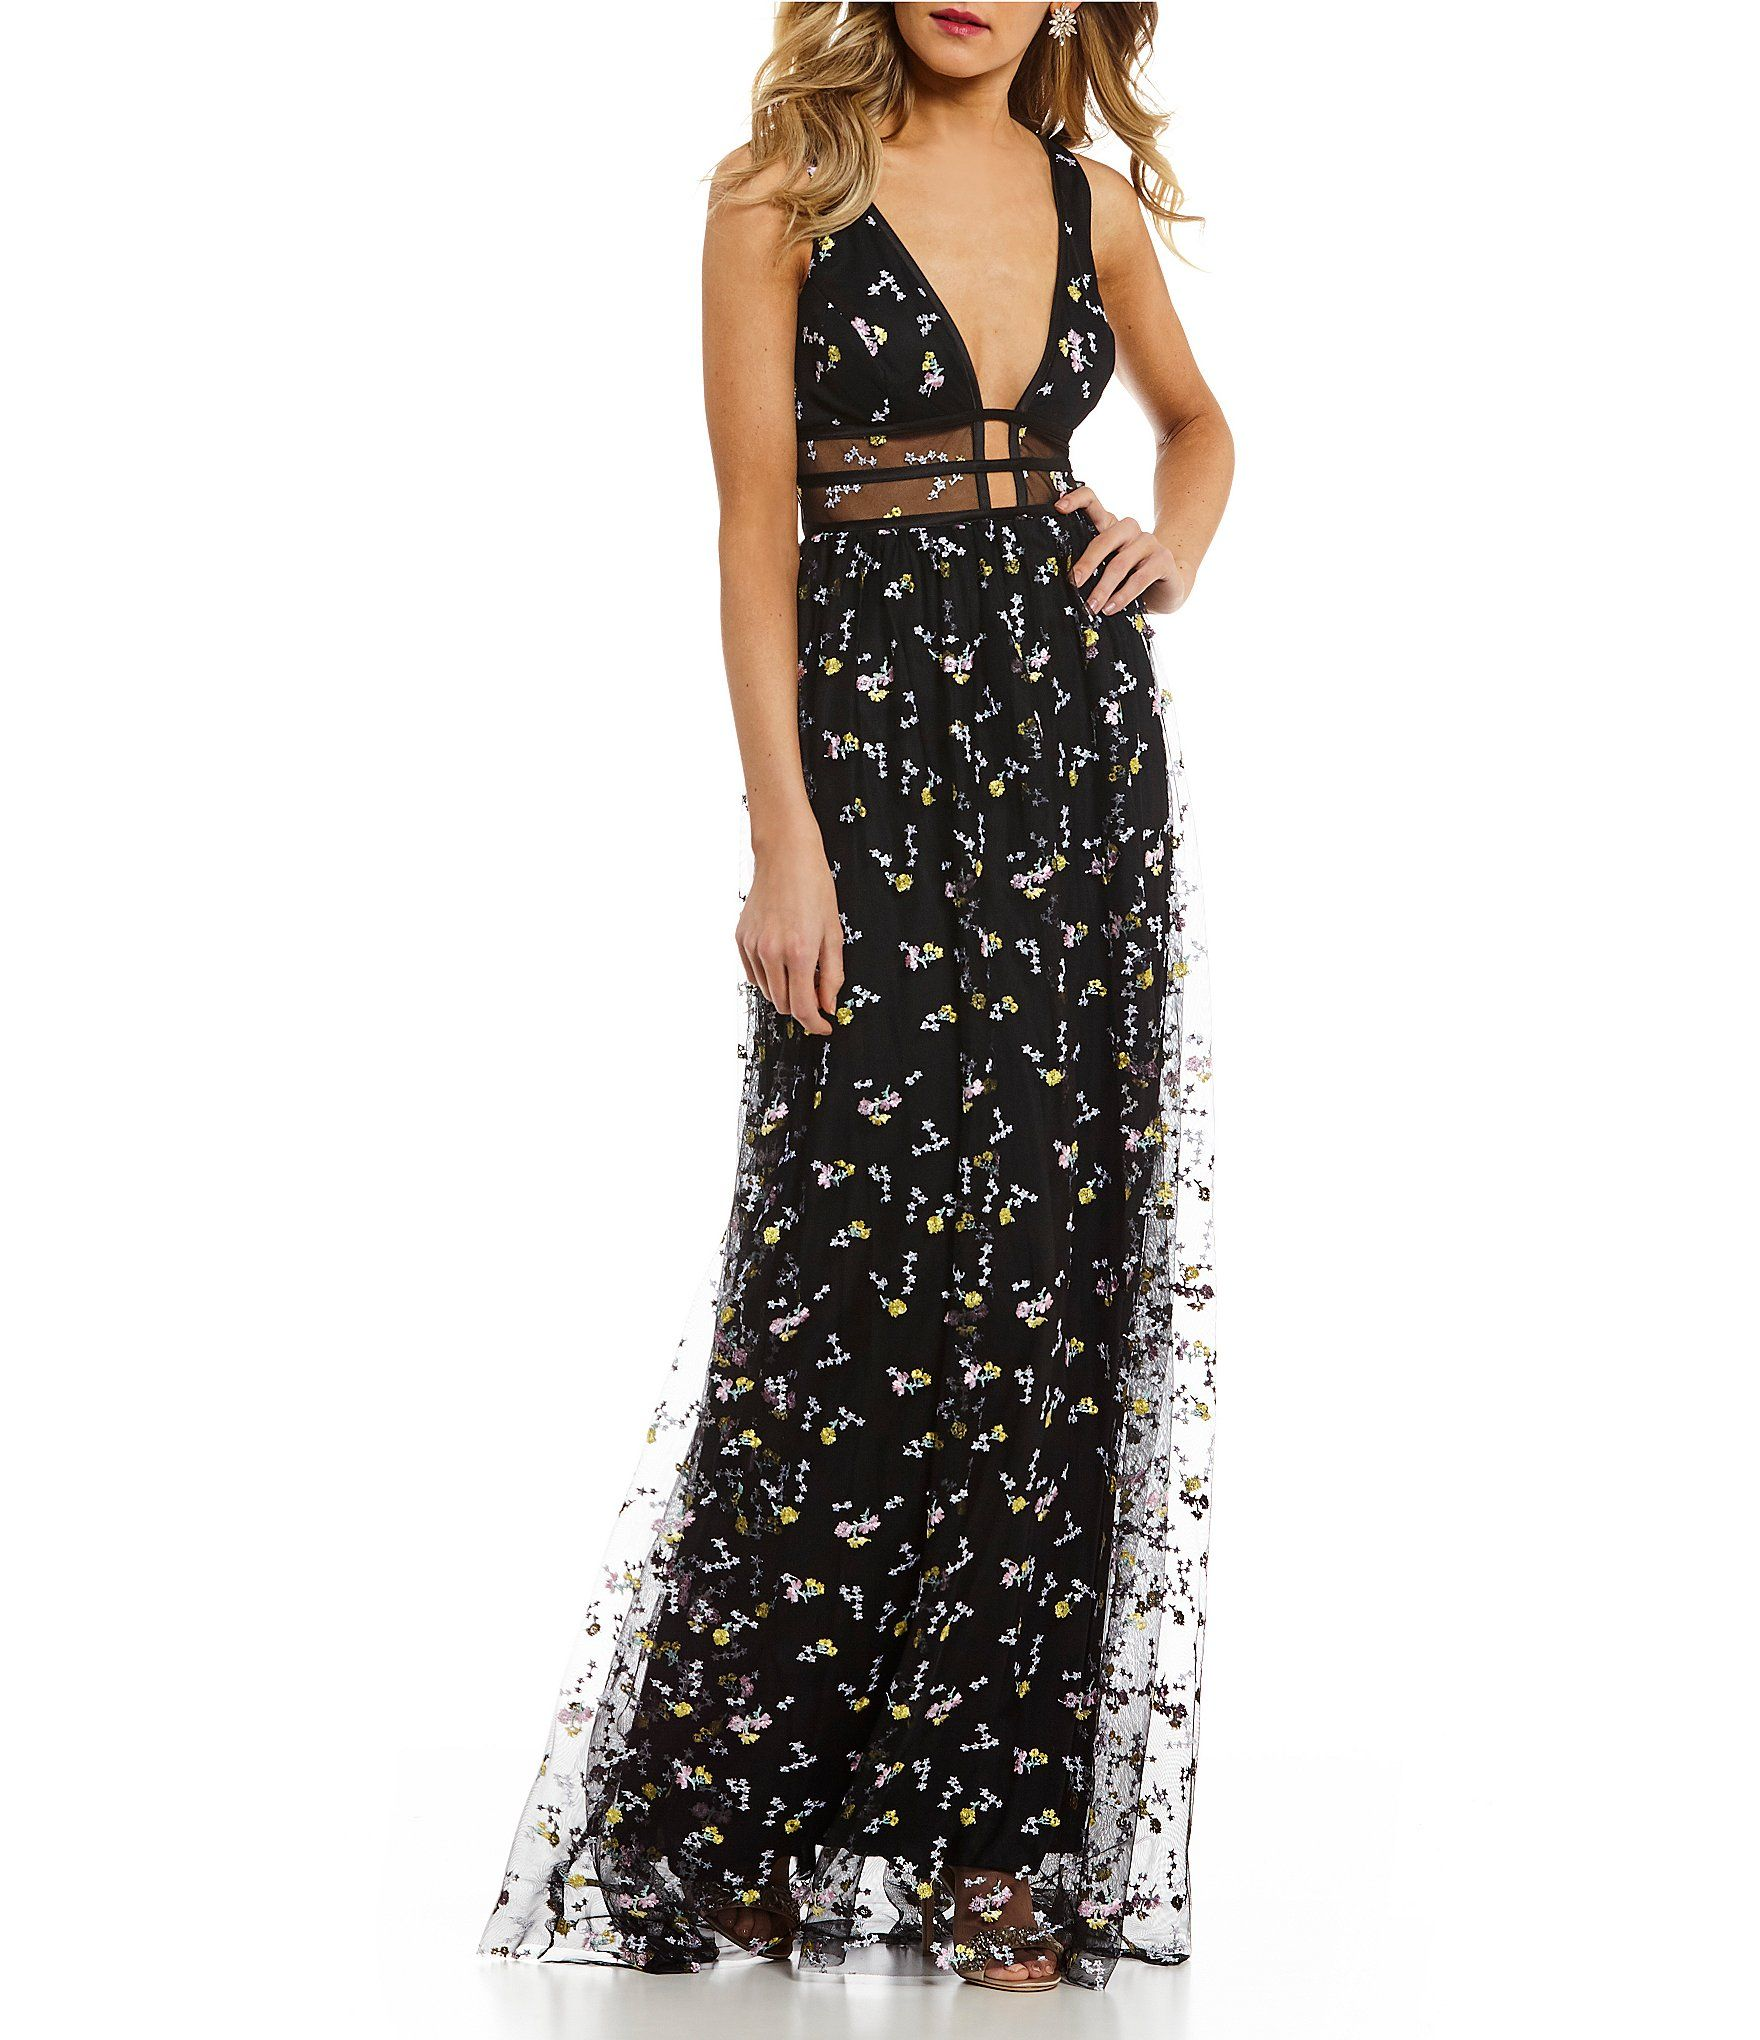 9cac145a2e9 Shop for GB Social Ditzy Floral Embroidered Gown at Dillards.com. Visit  Dillards.com to find clothing